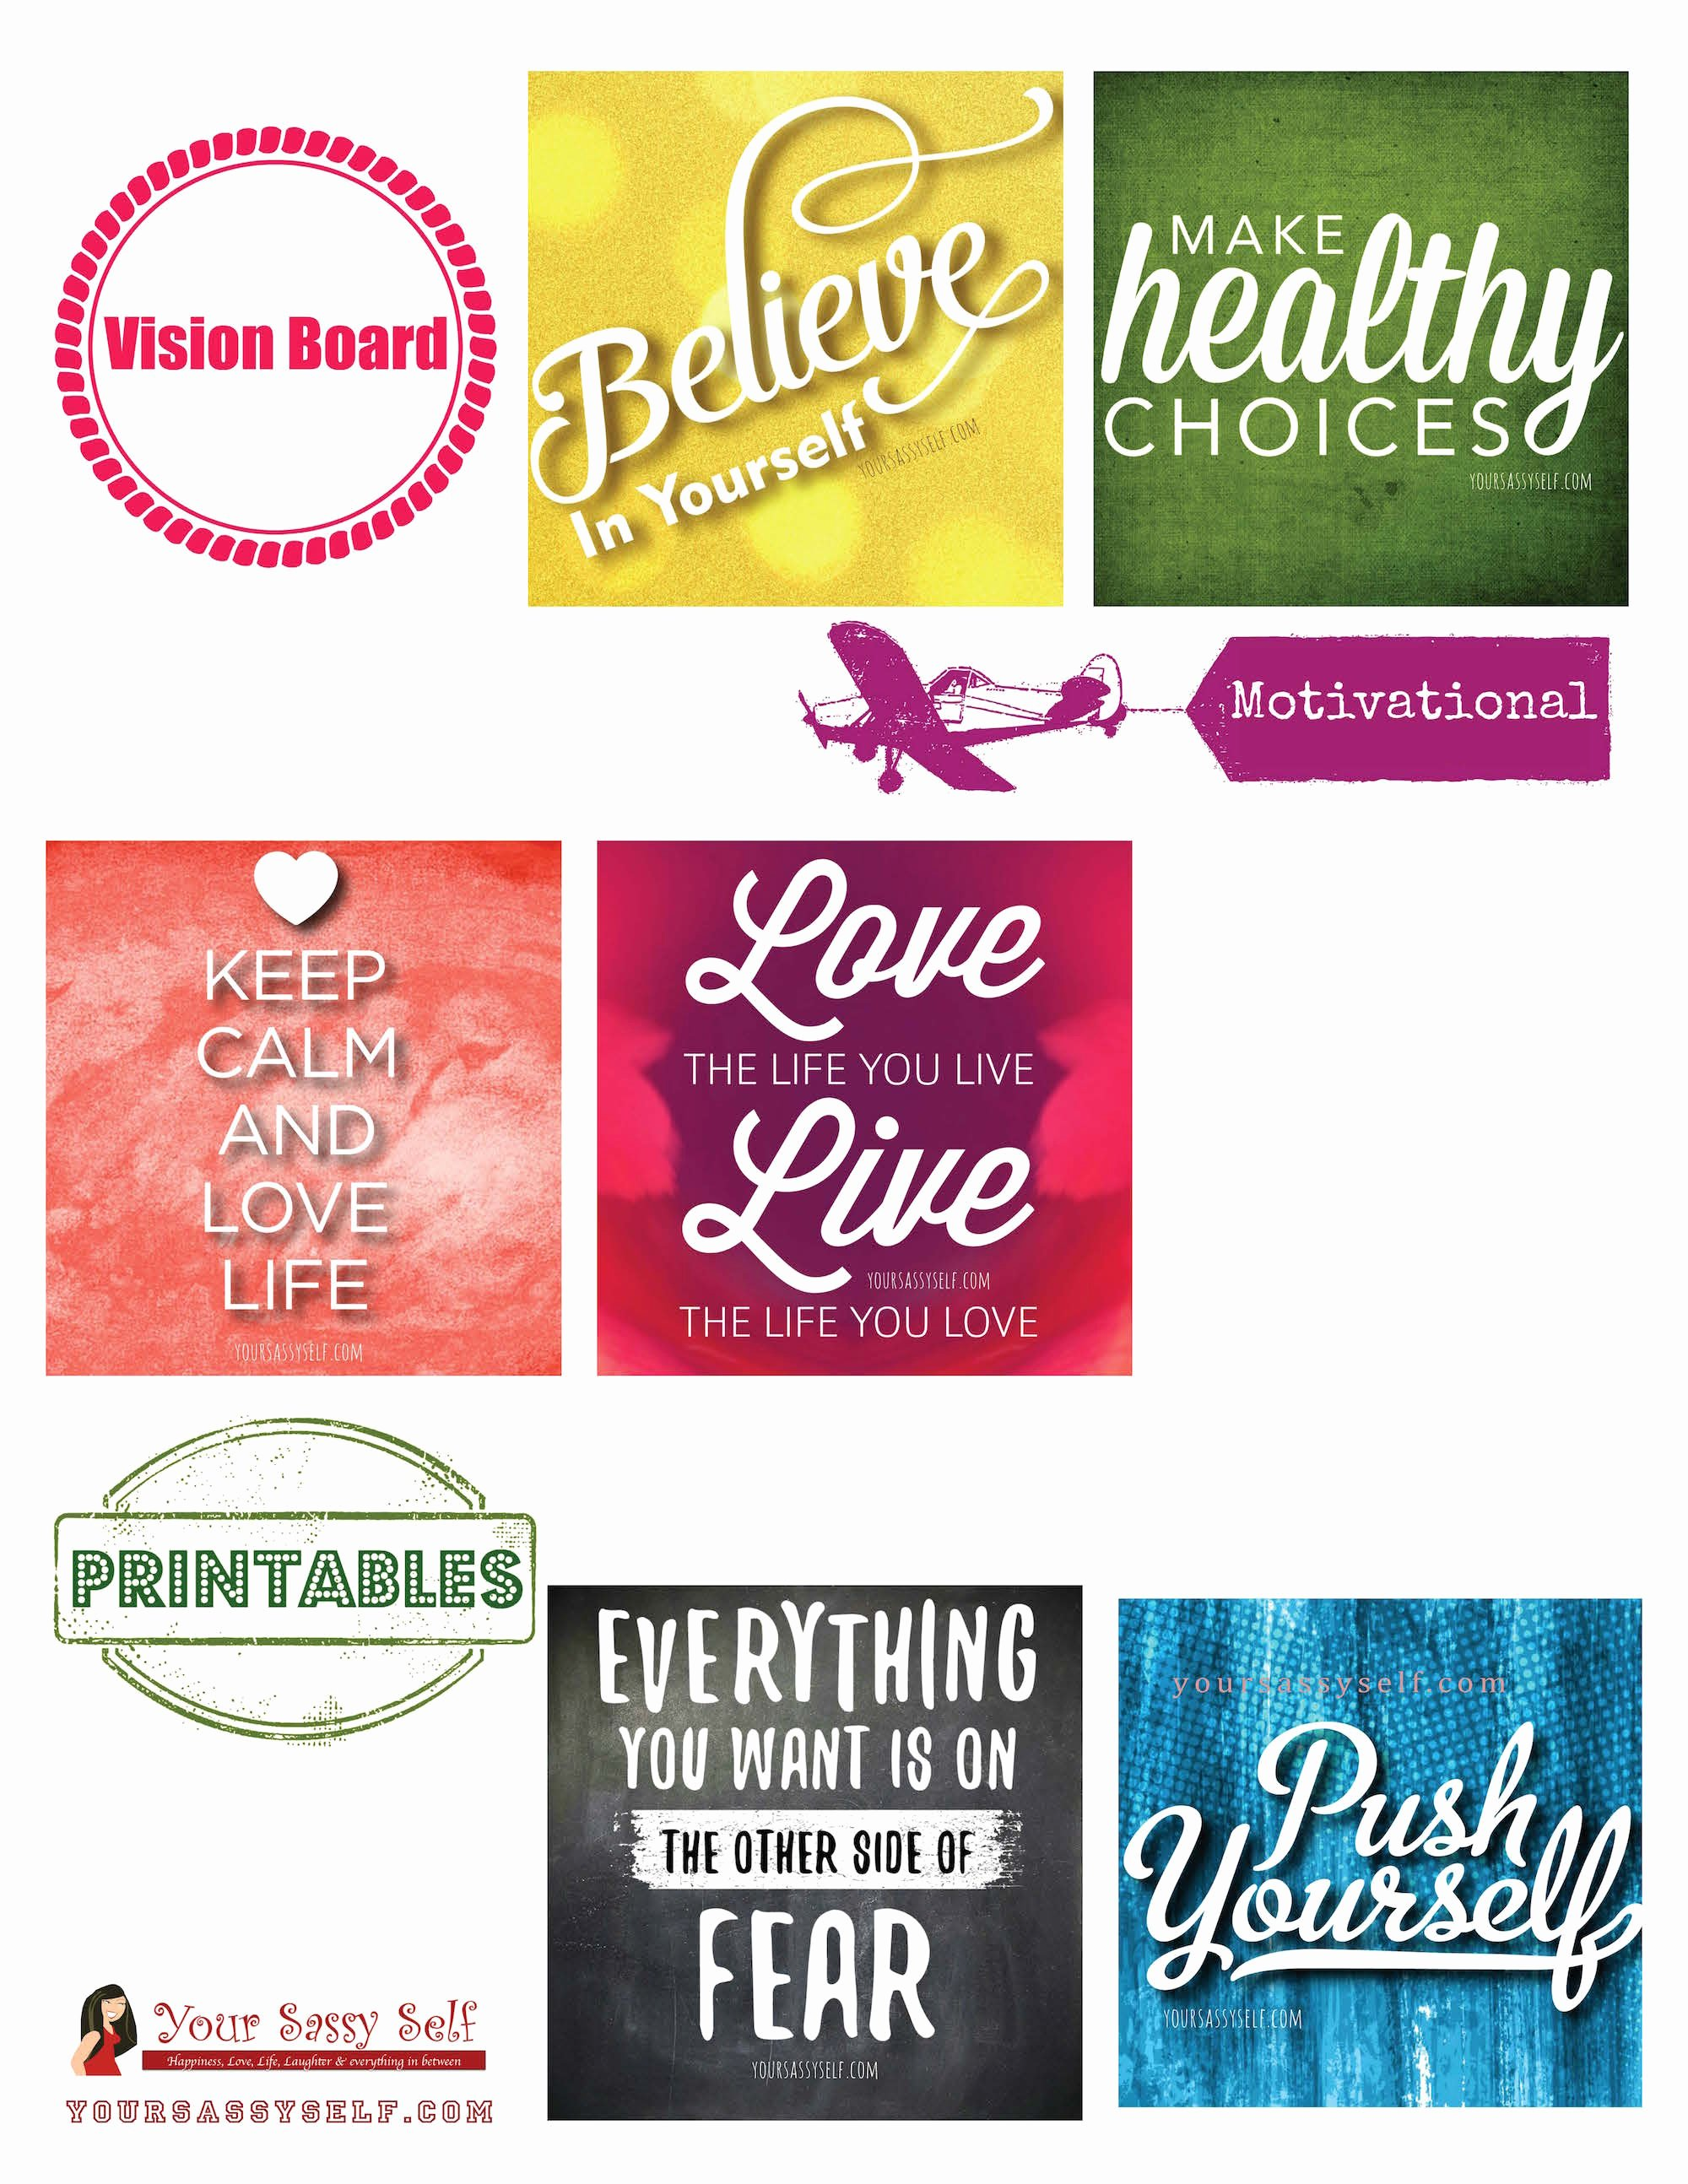 Printable Vision Board Template Awesome Vision Board to Live the Life You Want Your Sassy Self